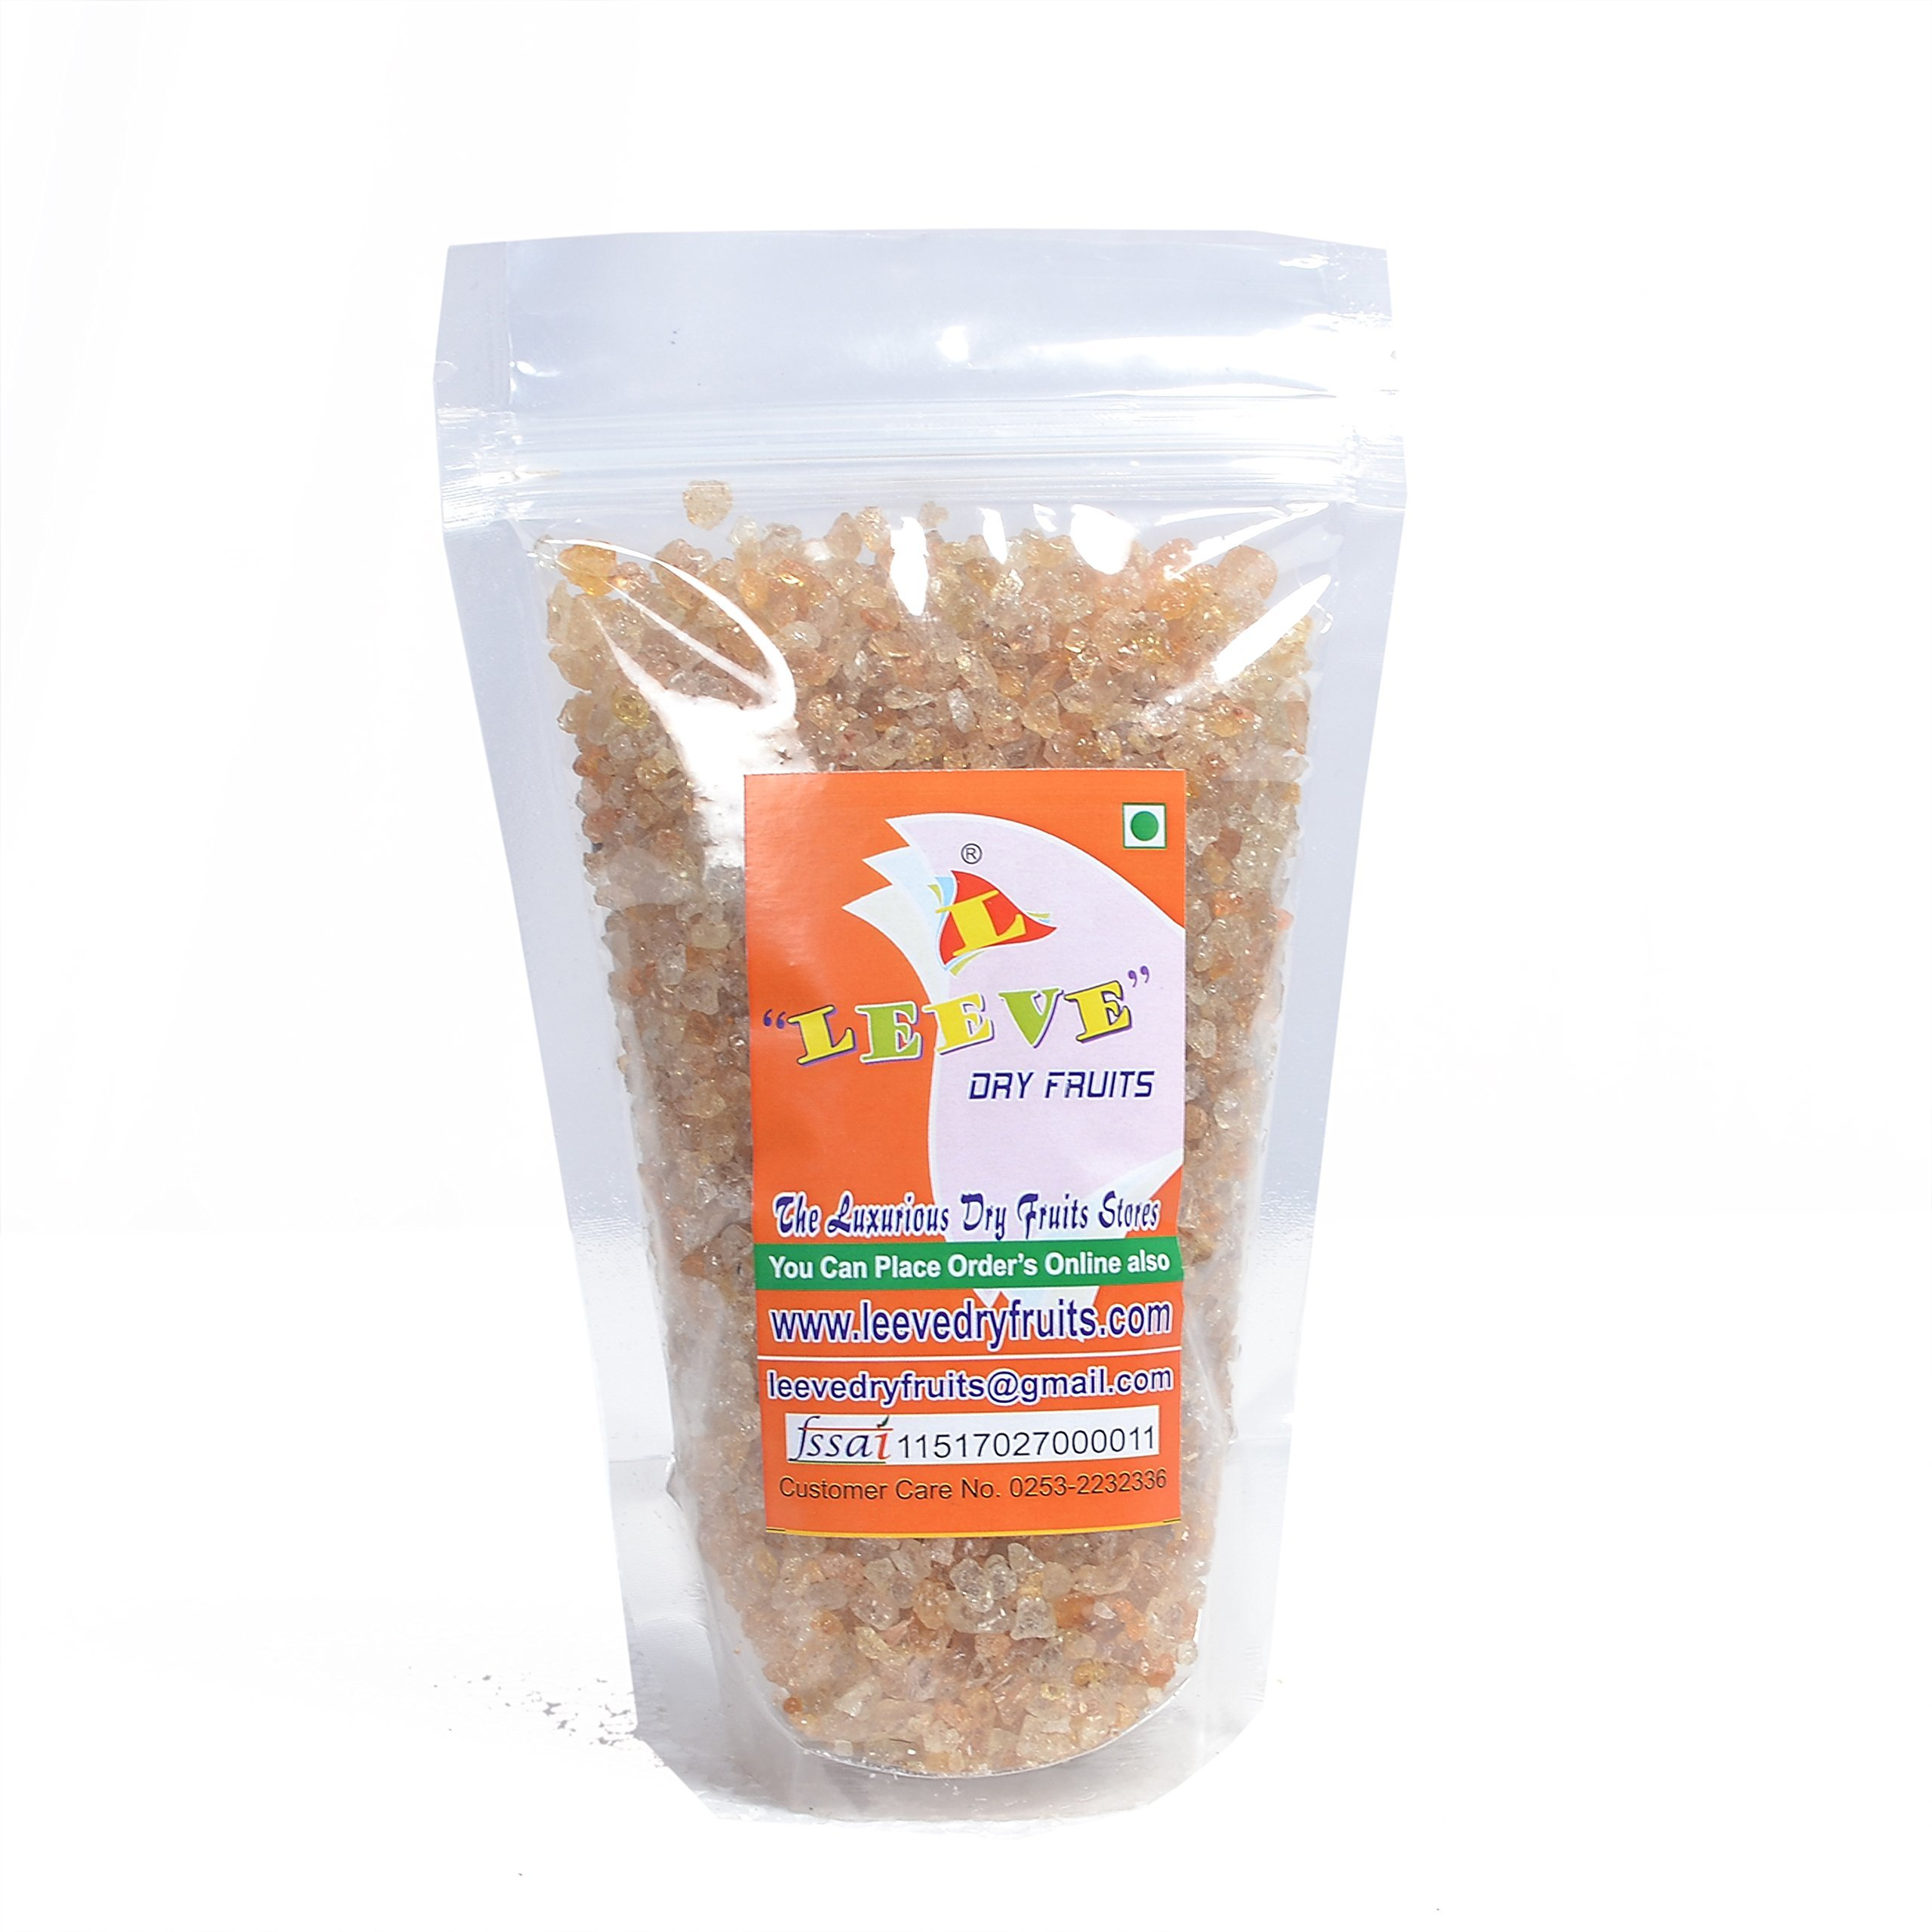 Leeve Dry Fruits Dink - Gond Standard - 400 Grams by Leeve Dry Fruits (Image #1)